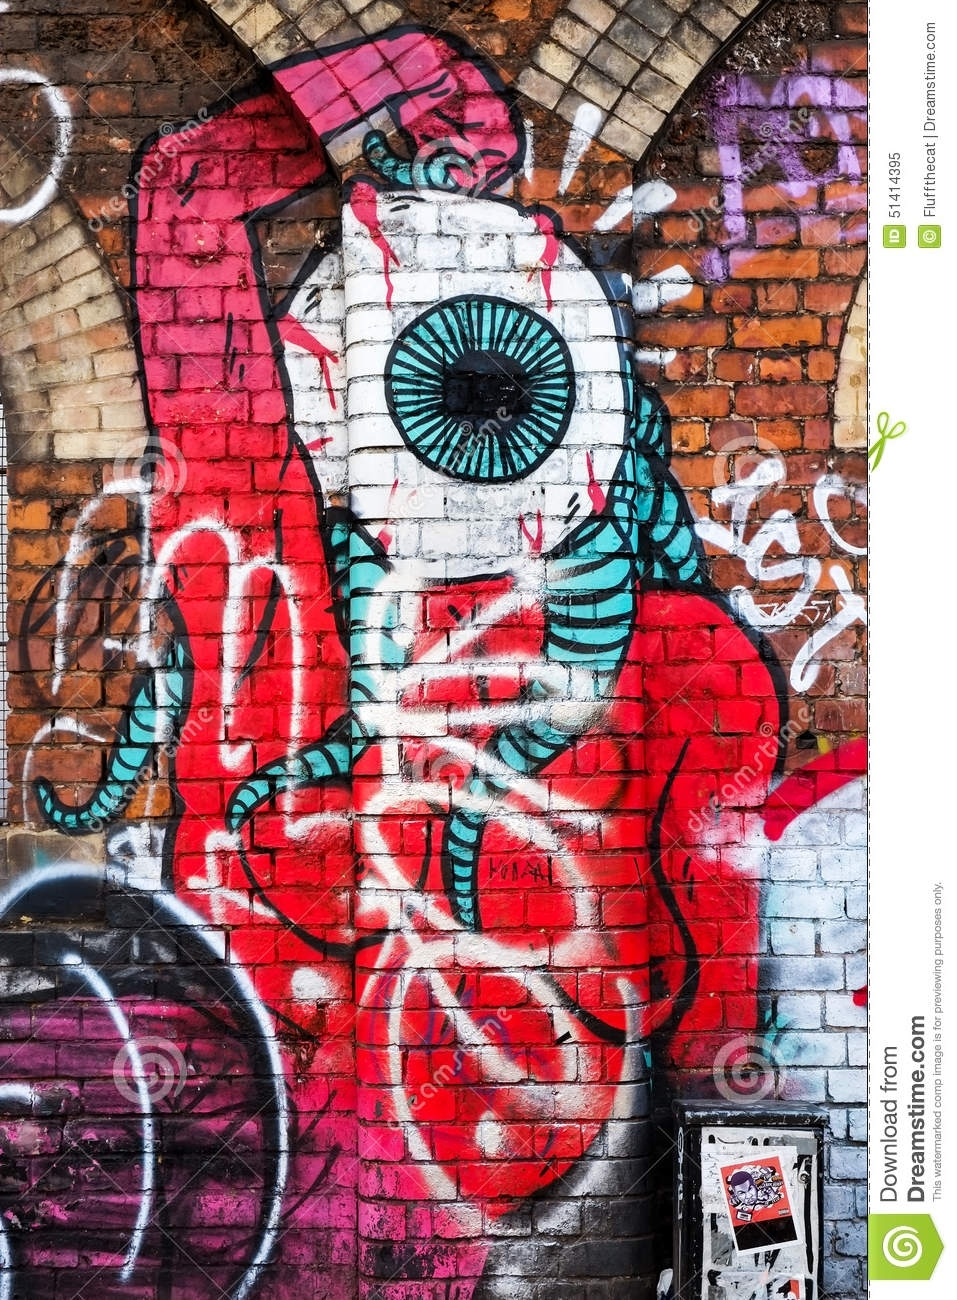 Monster Creature With Big Eye, Graffiti Wall Art, London Uk With Regard To Most Up To Date Abstract Graffiti Wall Art (View 15 of 20)